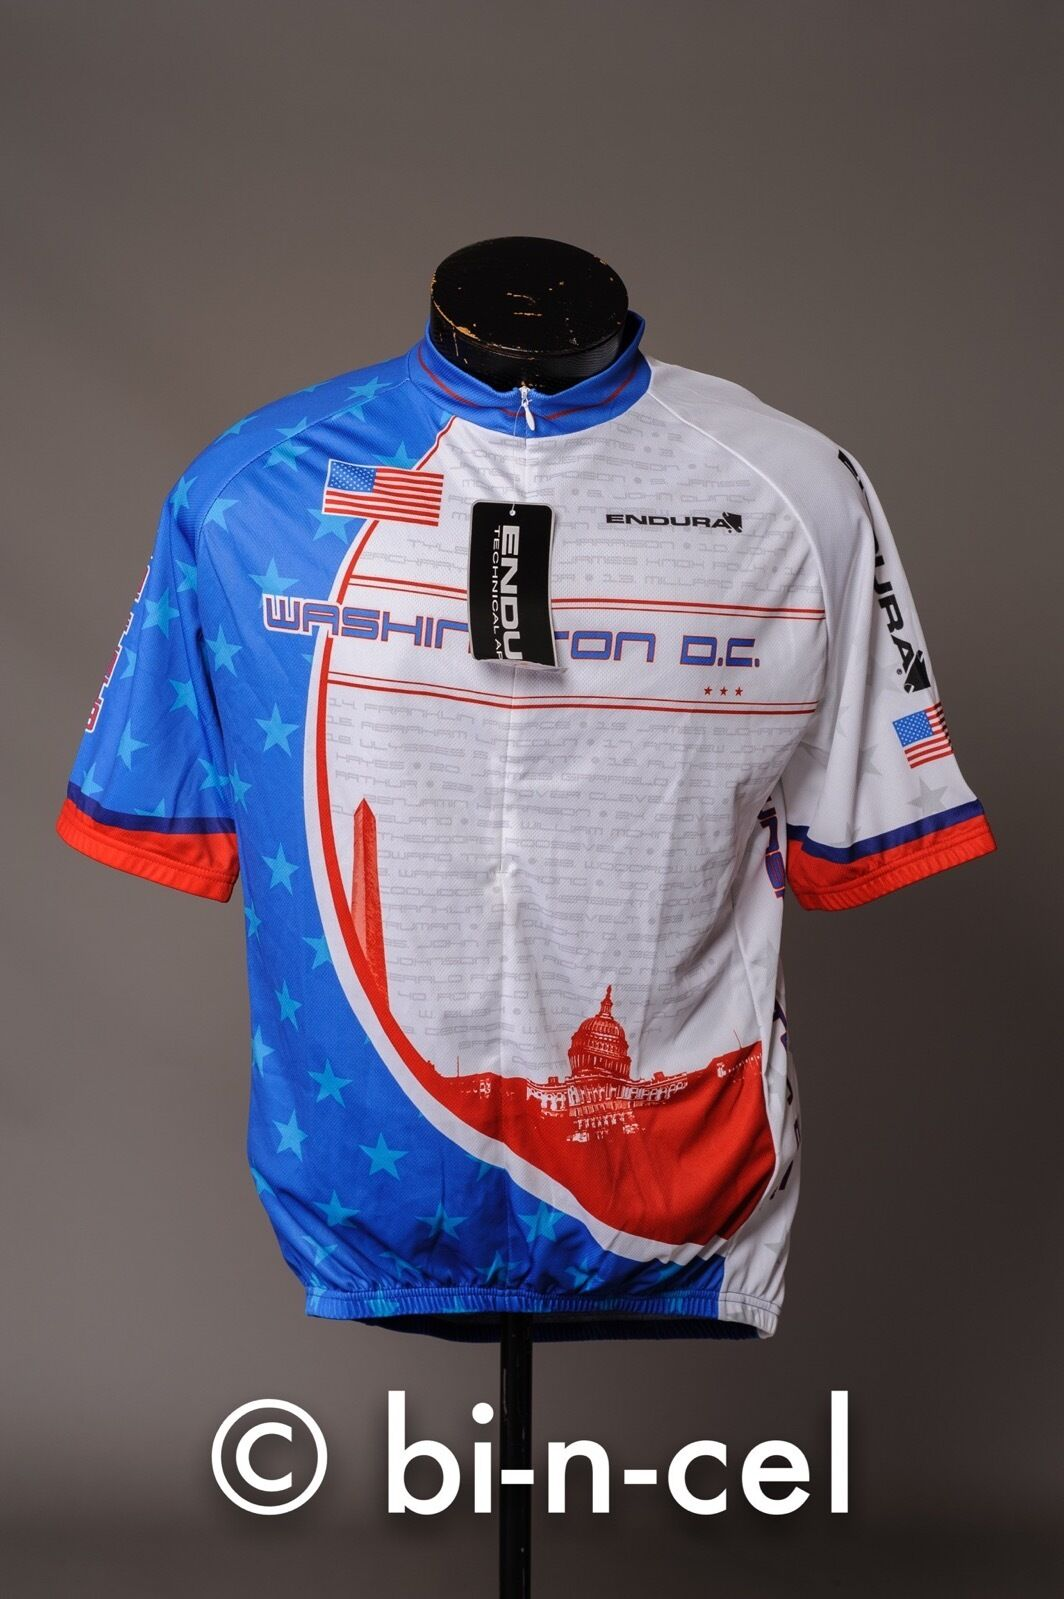 NWT ENDURA WASHINGTON DC XL ROAD MOUNTAIN CYCLING JERSEY  MSRP  80.00  there are more brands of high-quality goods